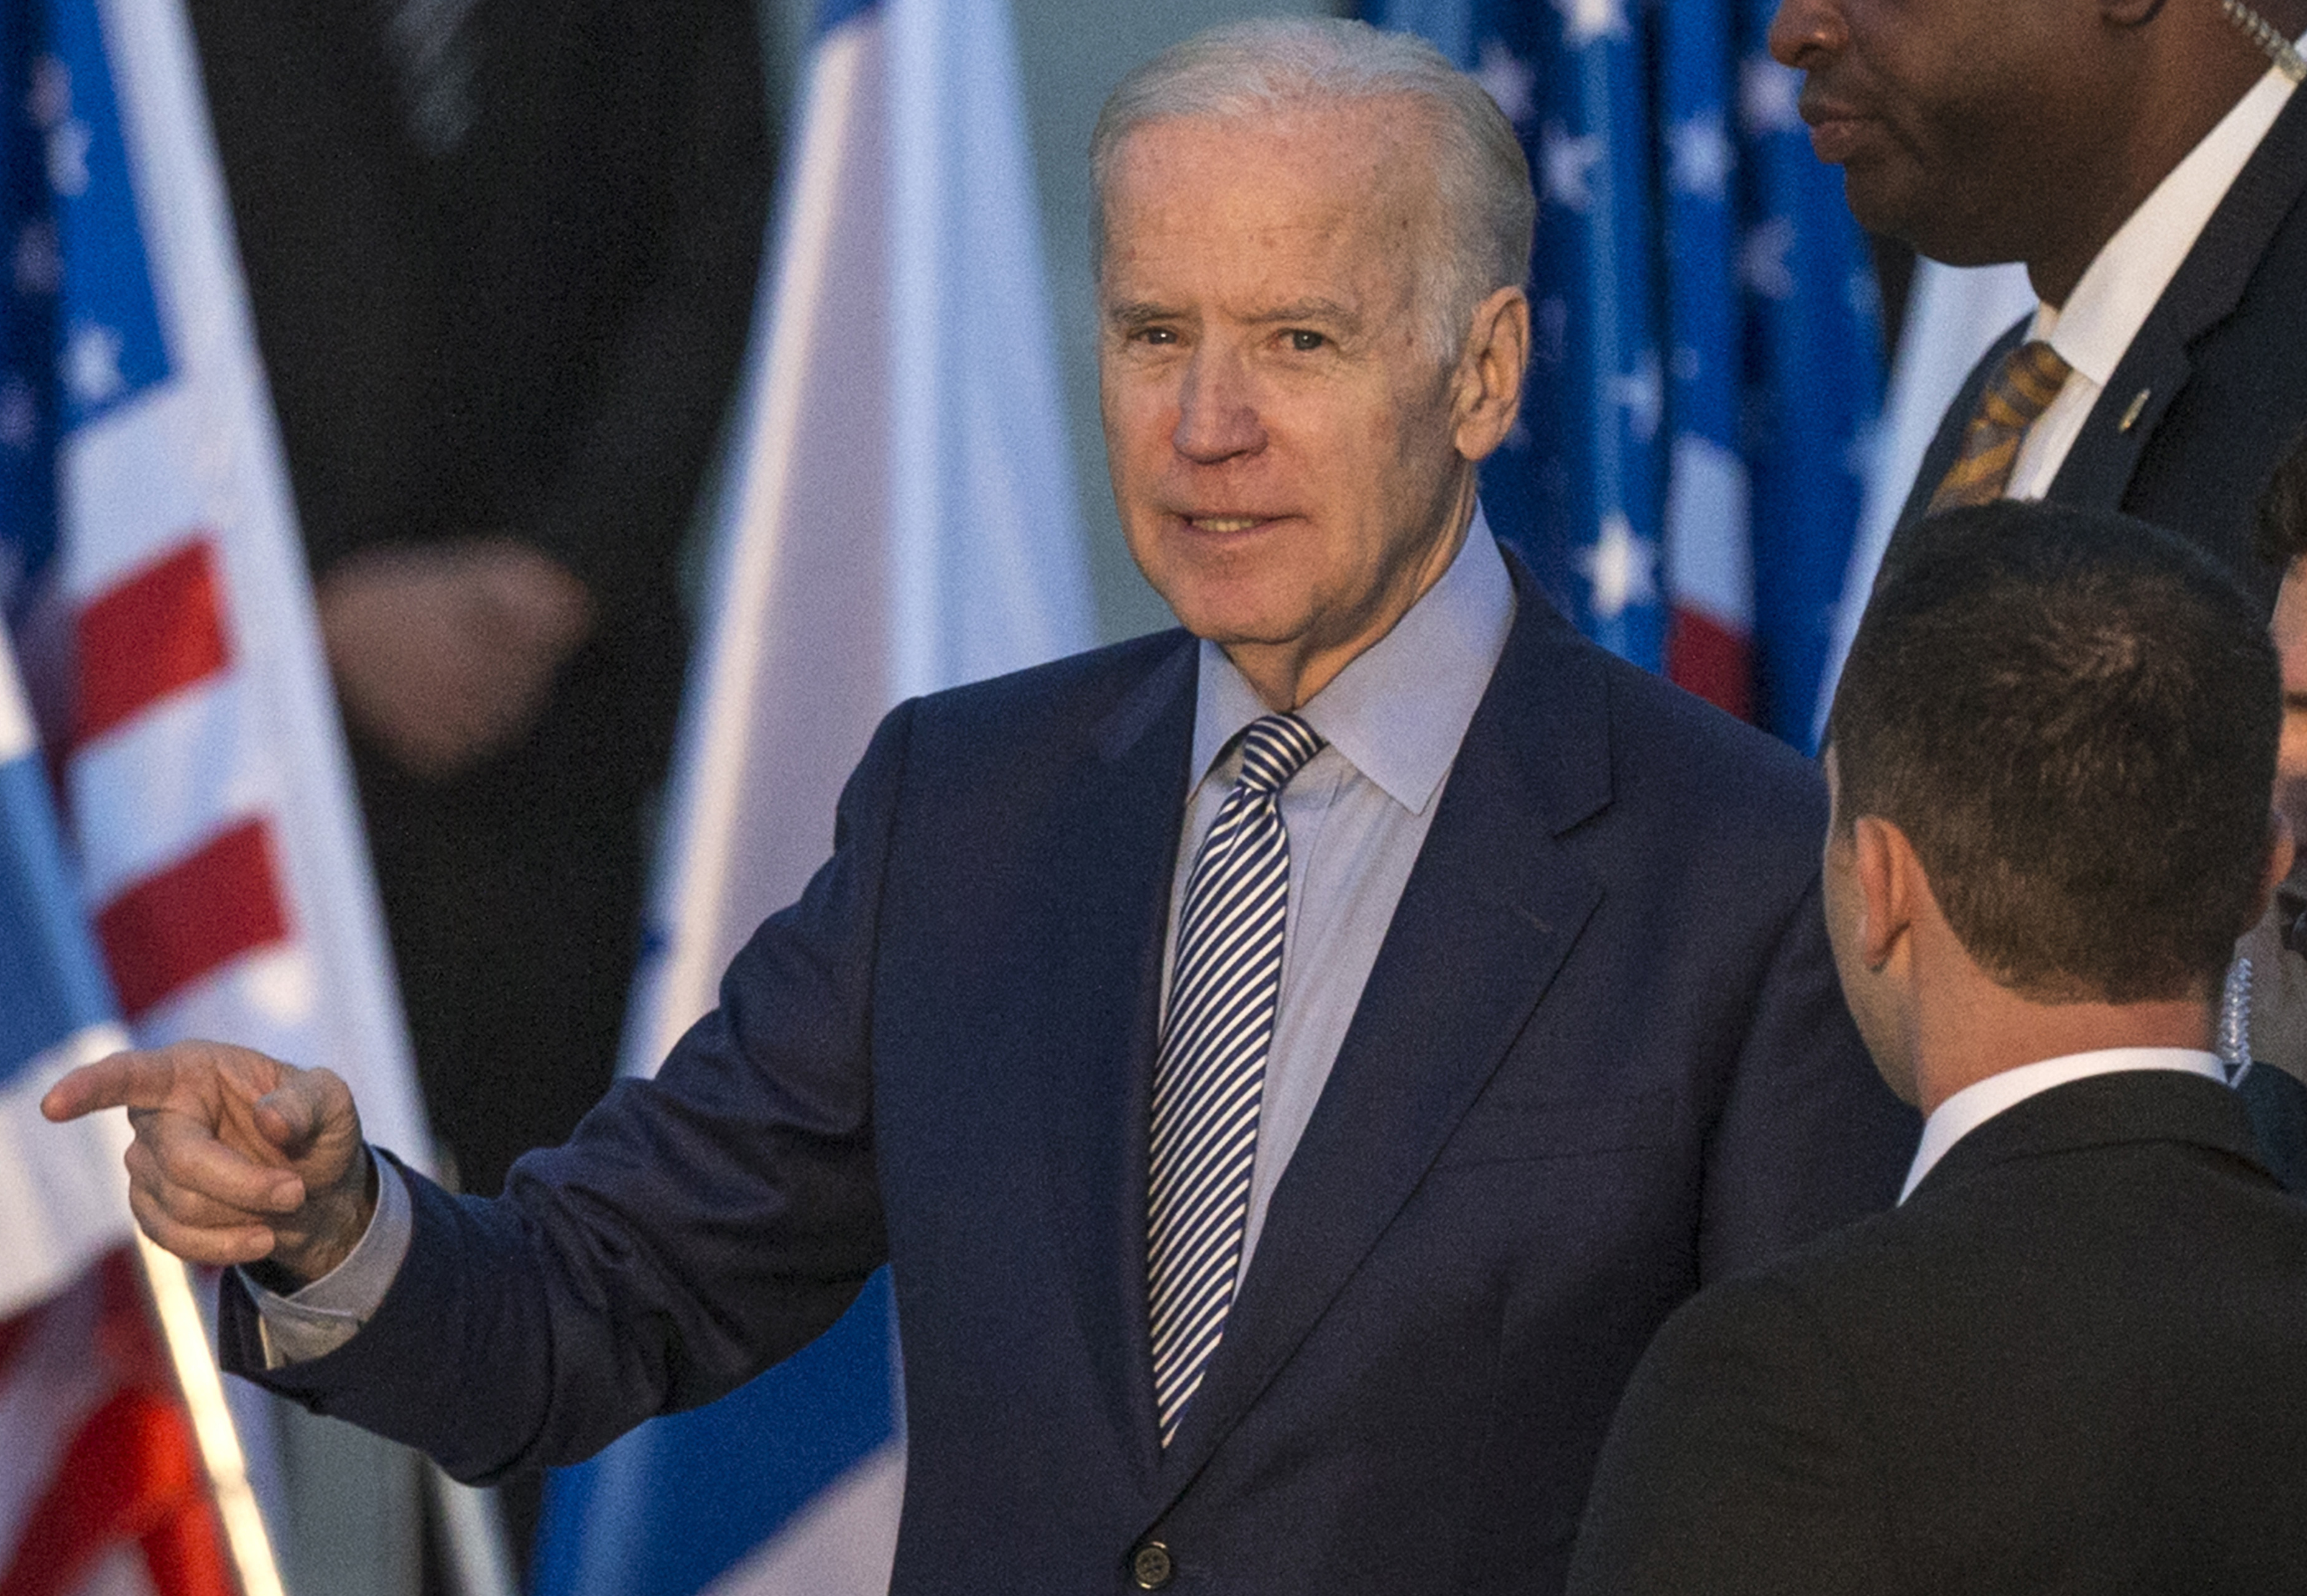 Joe Biden gestures upon his arrival at Israel's Ben Gurion International Airport on March 8, 2016.